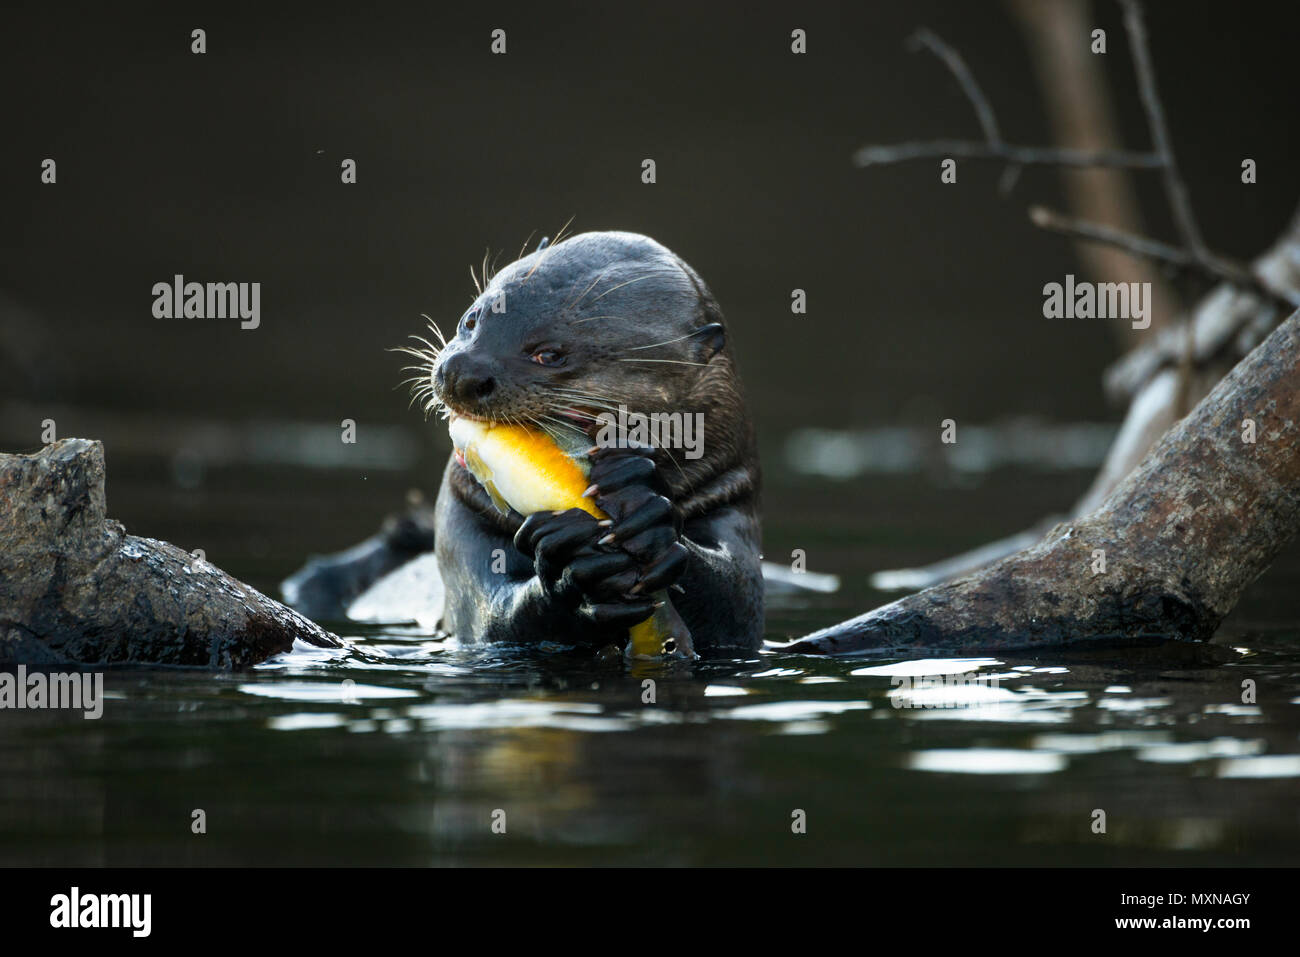 A Giant Otter (Pteronura brasiliensis) eating a pike-cichlid fish - Stock Image